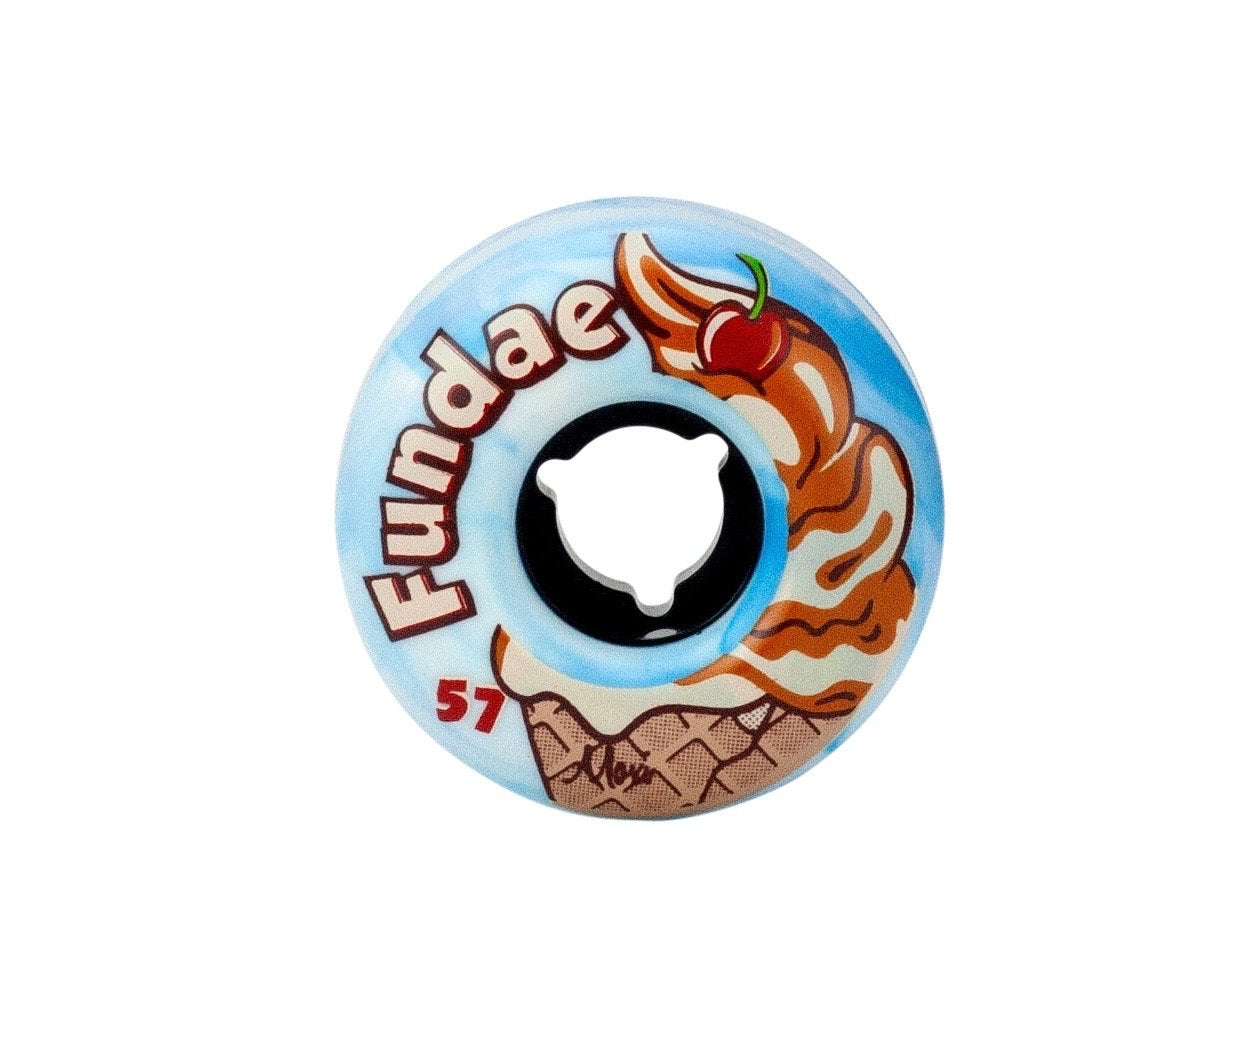 Moxi Fundae Birthday cake wheel